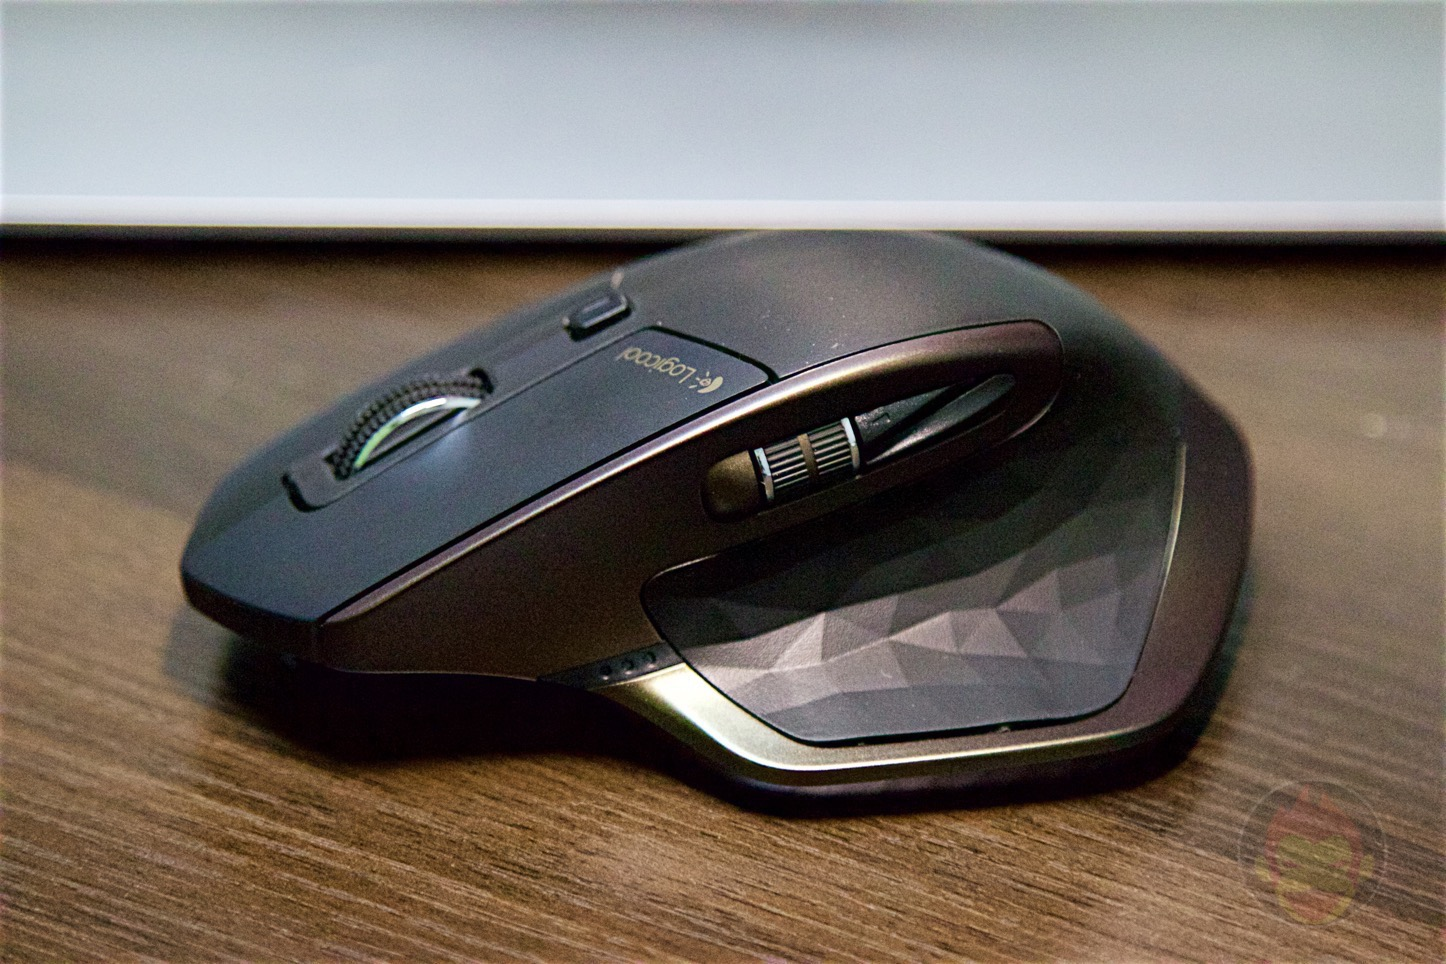 Logicool-MX-Master-Mouse-03.jpg